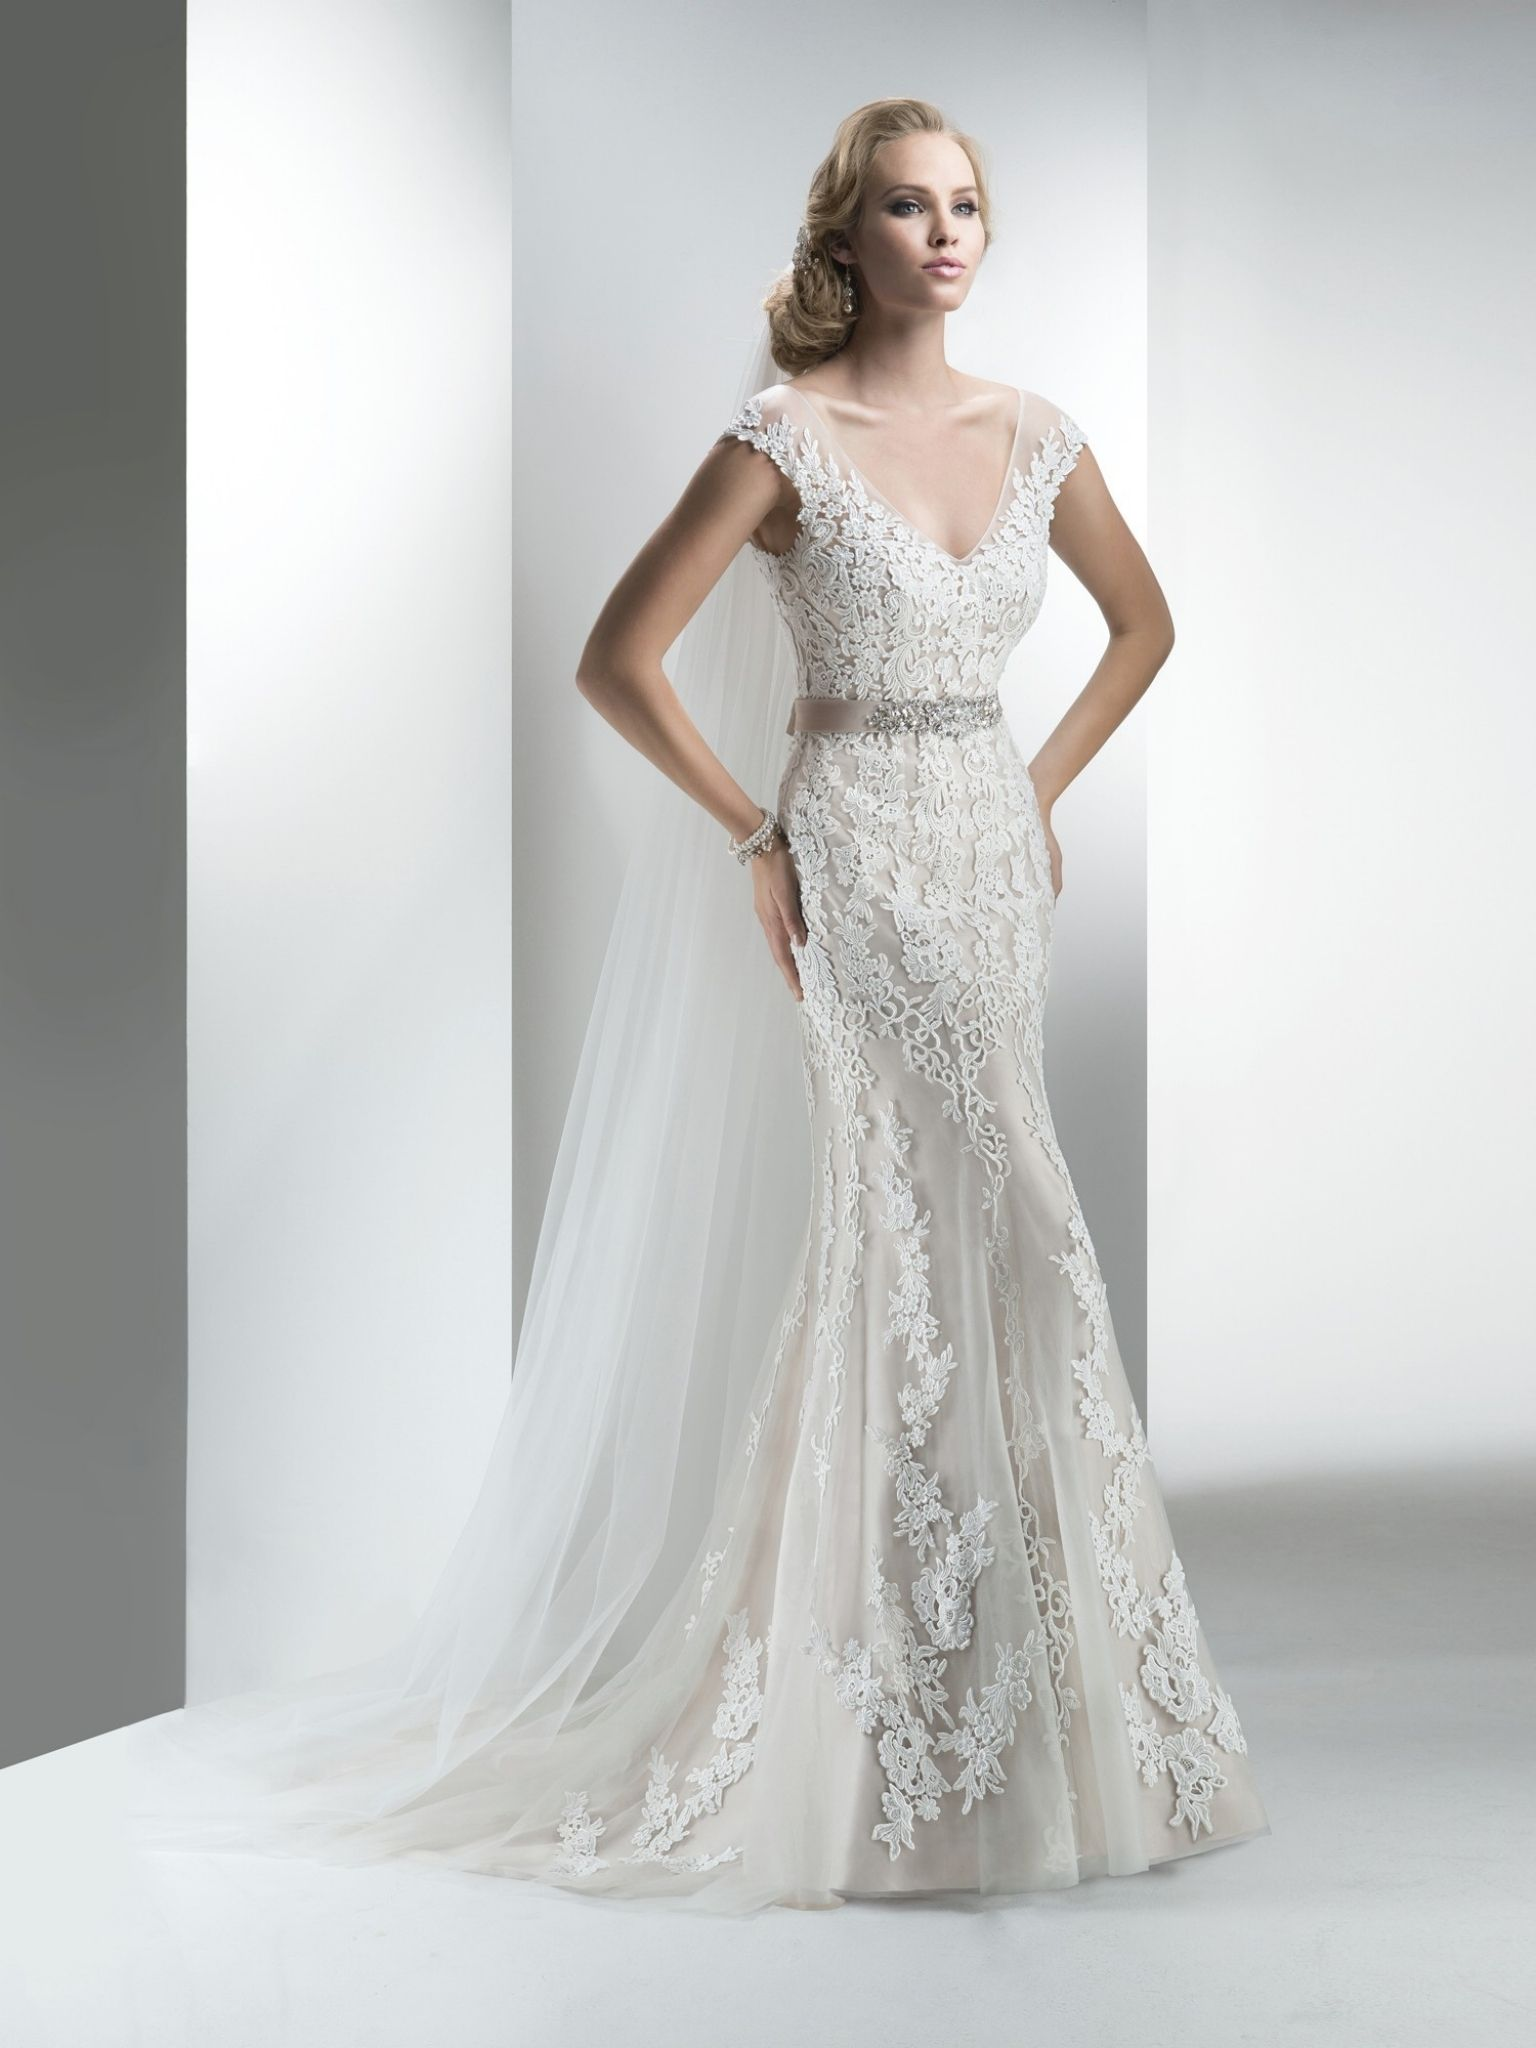 Superbe Maggie Sottero Wedding Dress Prices   Cold Shoulder Dresses For Wedding  Check More At Http: